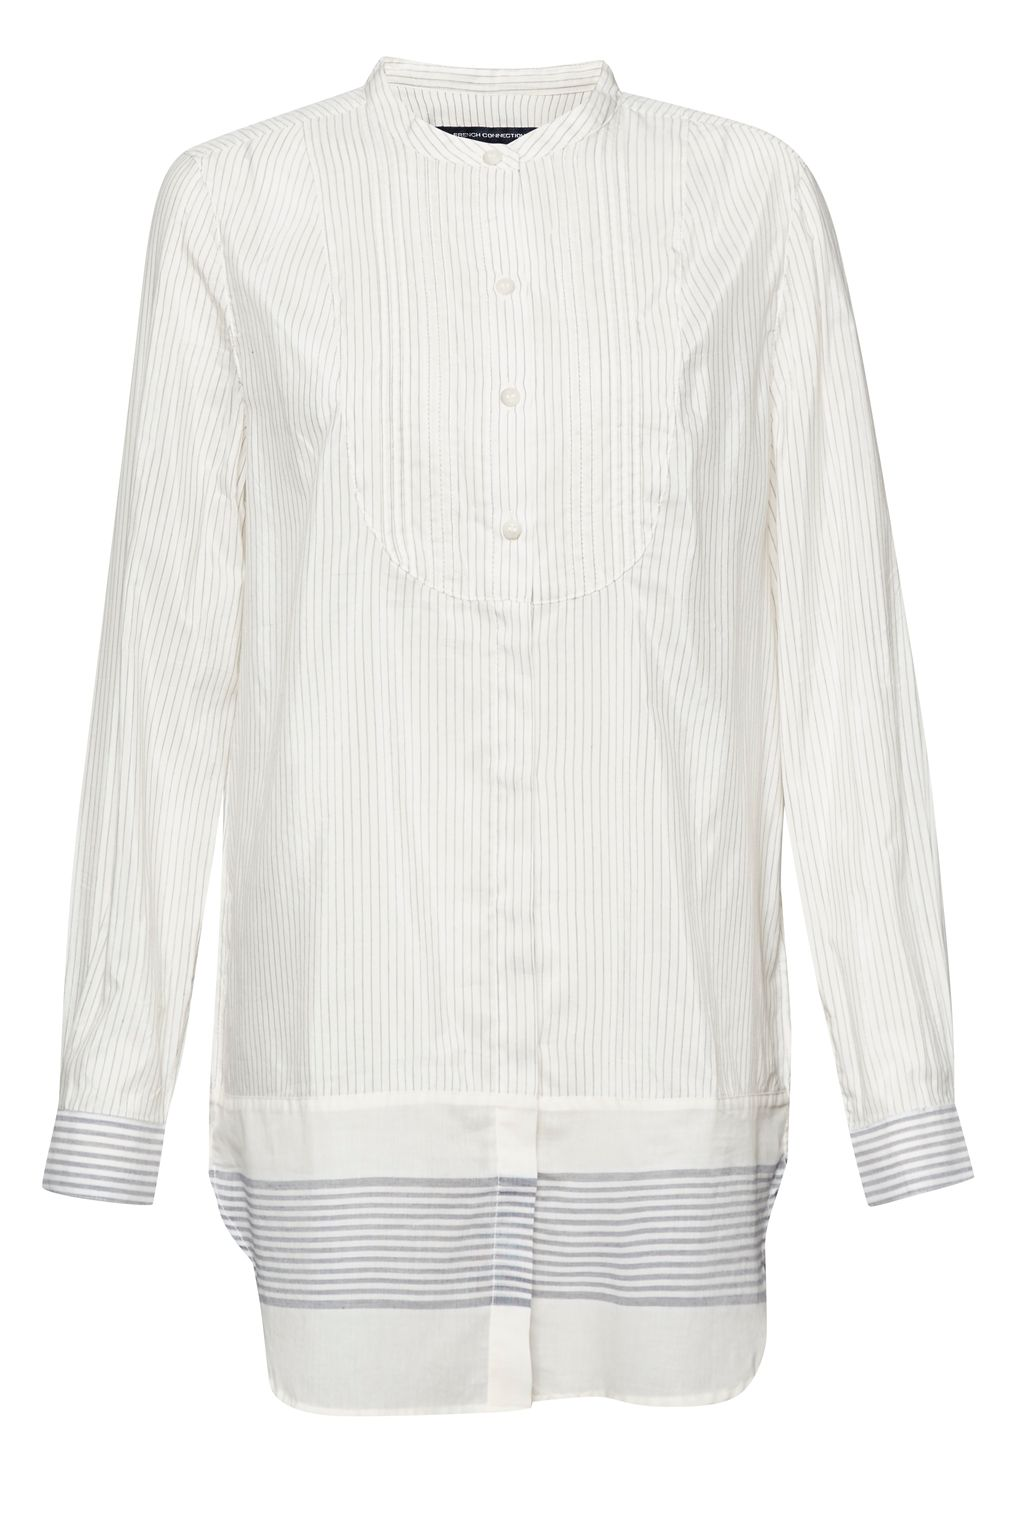 French Connection Hasan Flex Striped Tunic Shirt, Cream